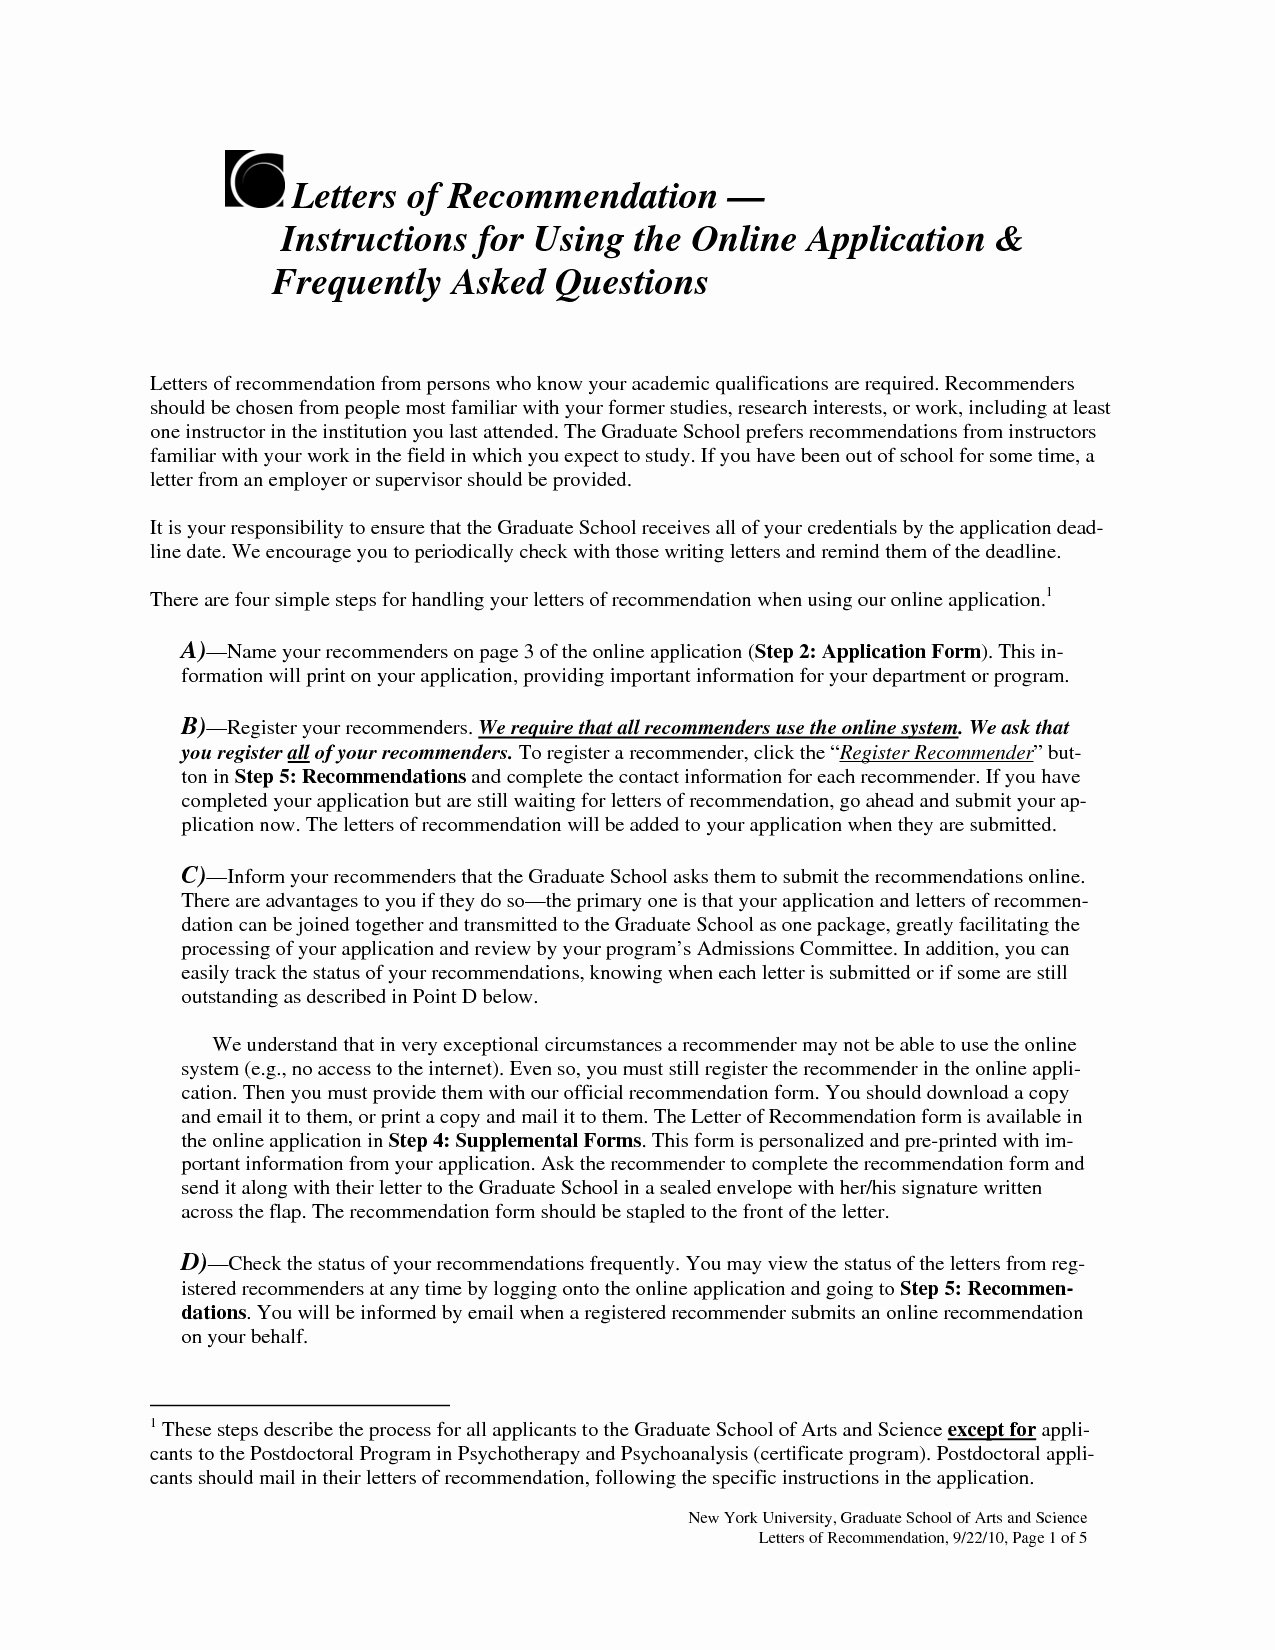 Grad School Letter Of Recommendation Beautiful Sample Re Mendation Letters for Graduate School From An